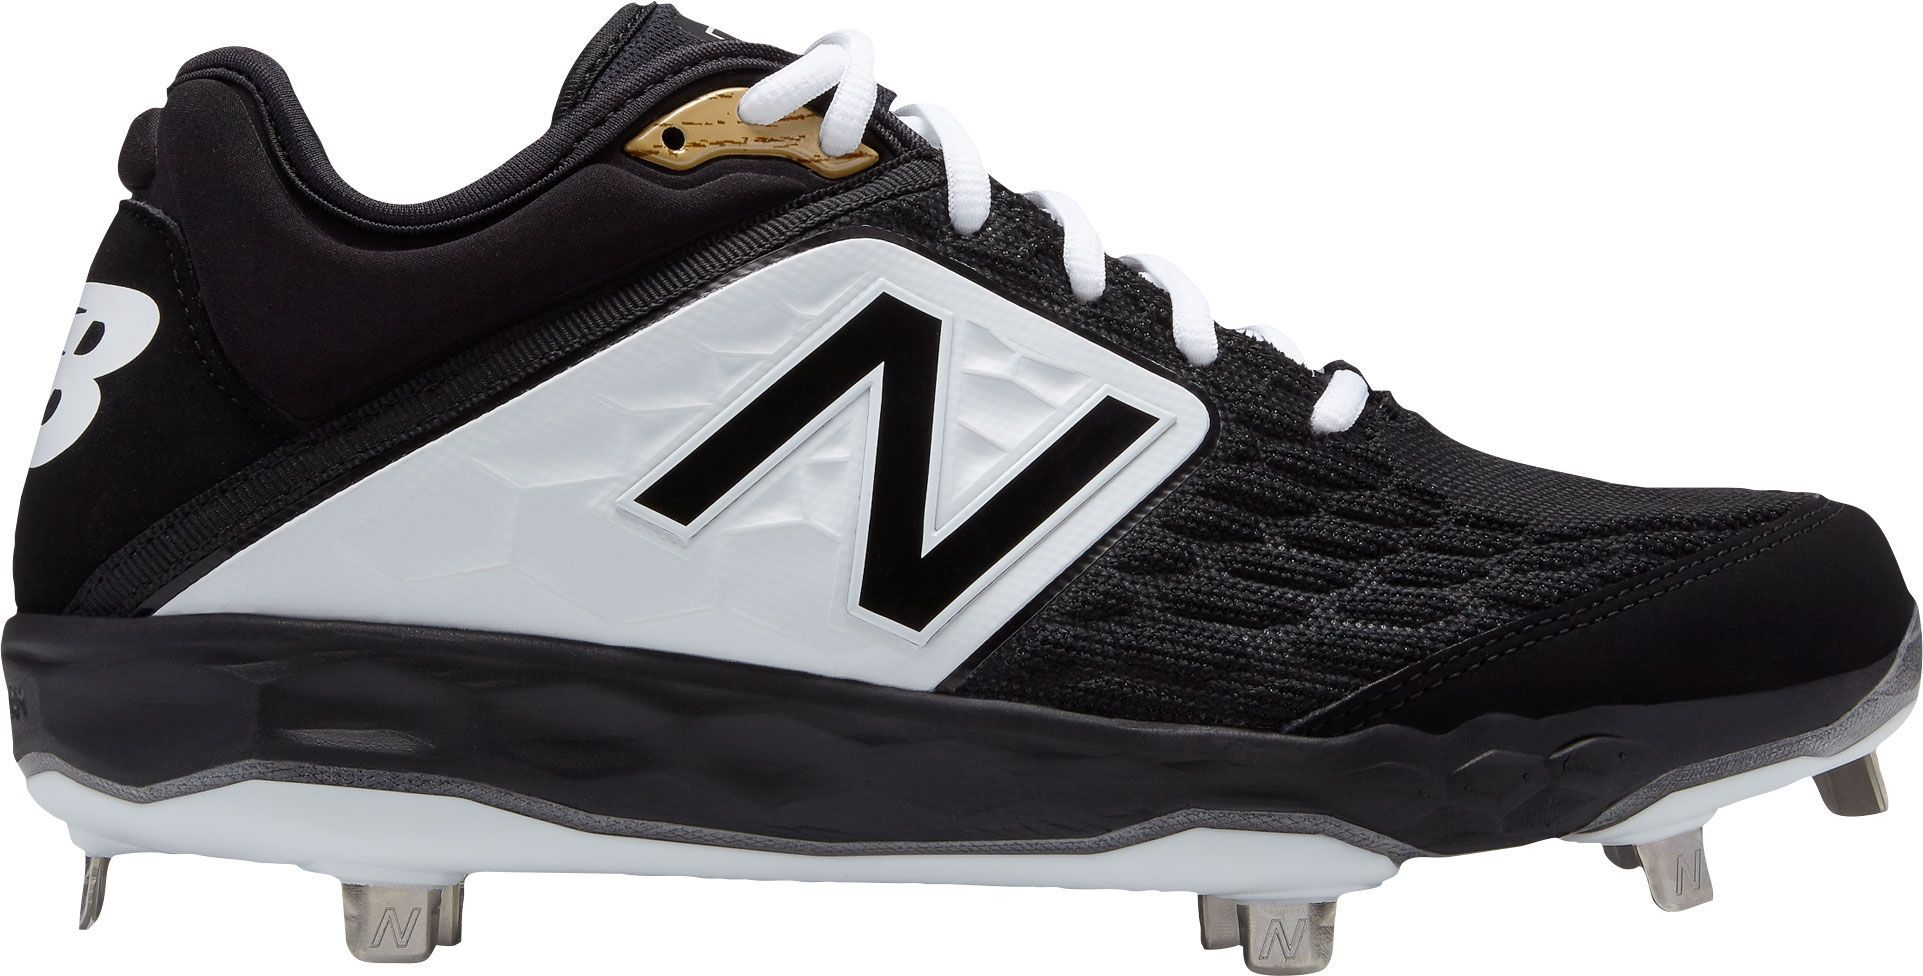 a123cc71a New Balance Men s 3000 V4 Metal Baseball Cleats